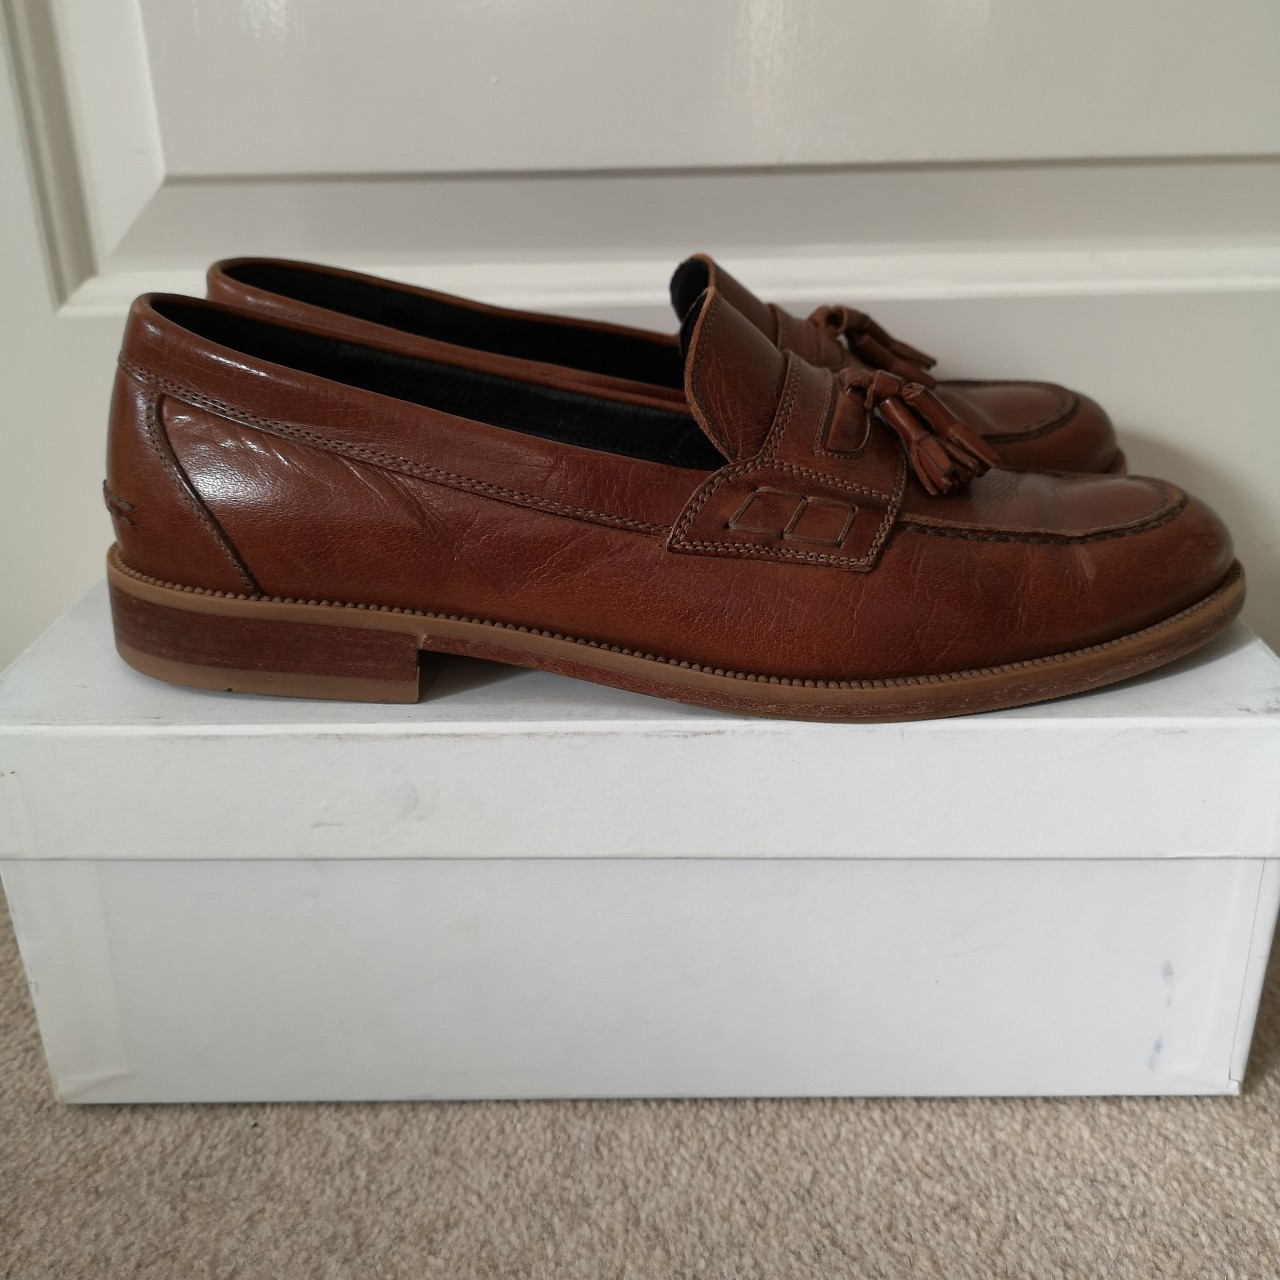 Russell and Bromley Keeble 3 tassle